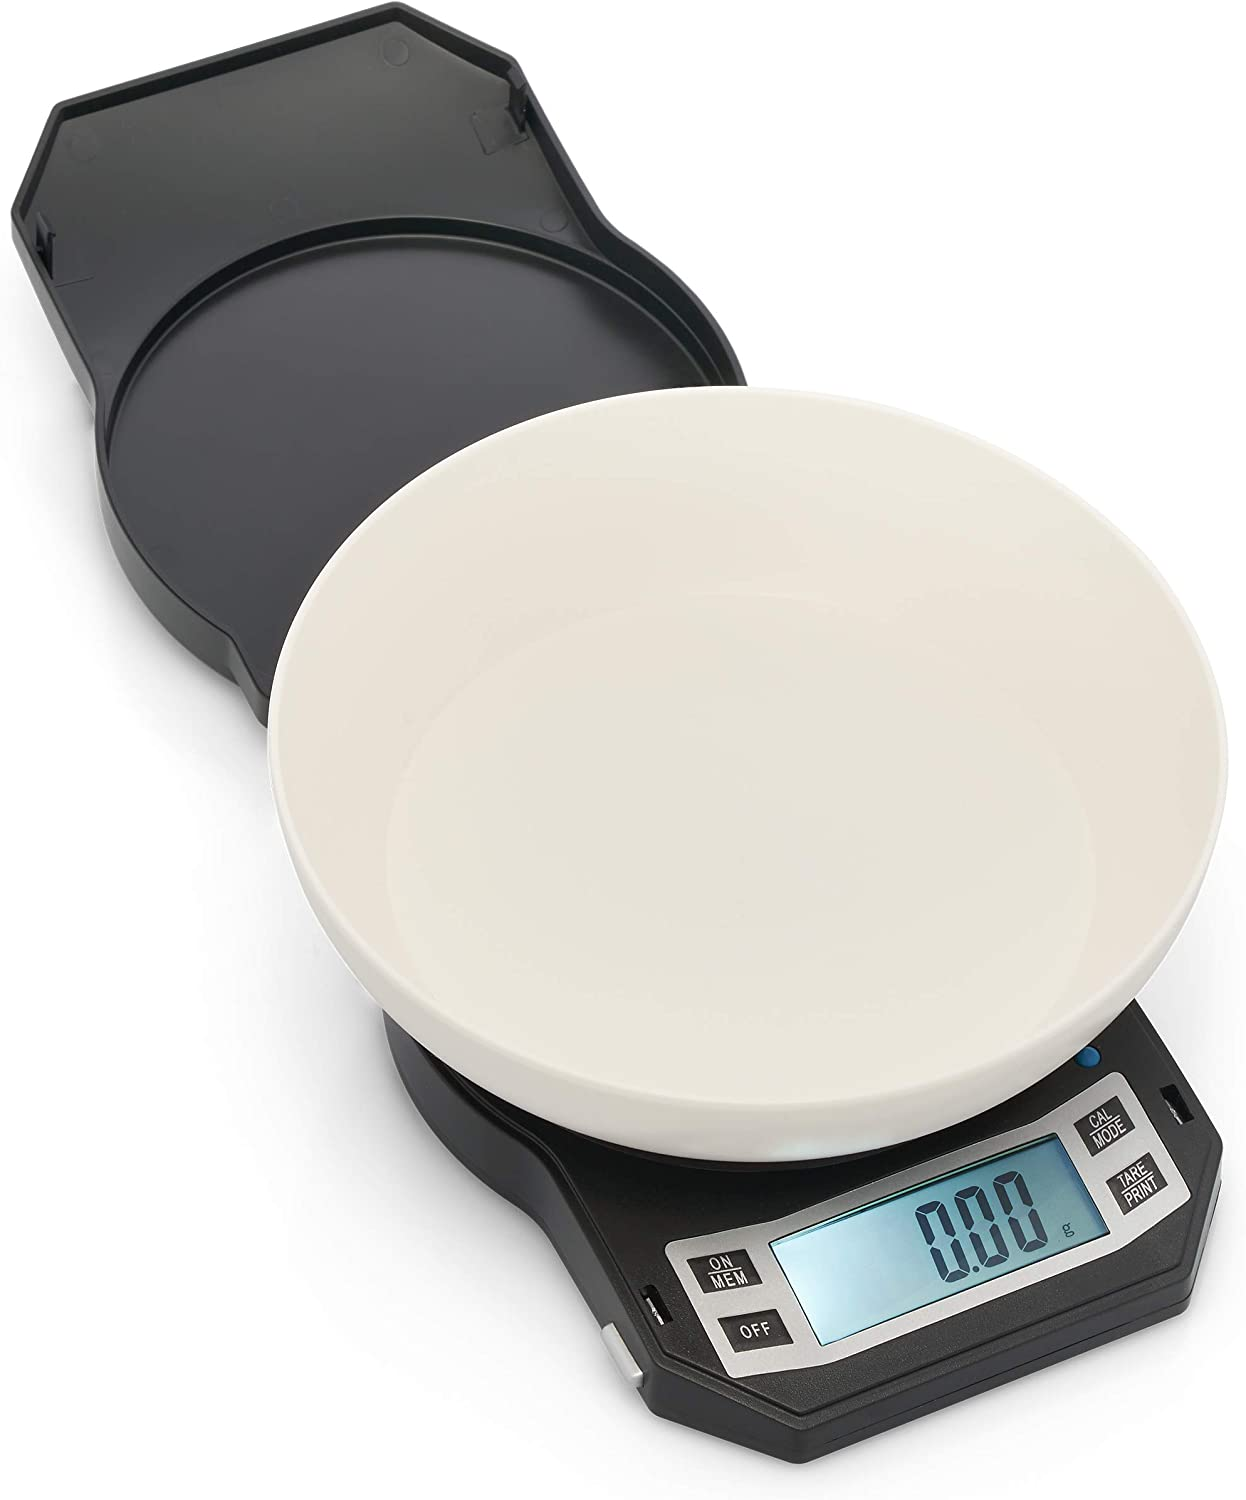 Bargain sale Precision Cheap Digital Kitchen Weight 50 Measuring Scale Food